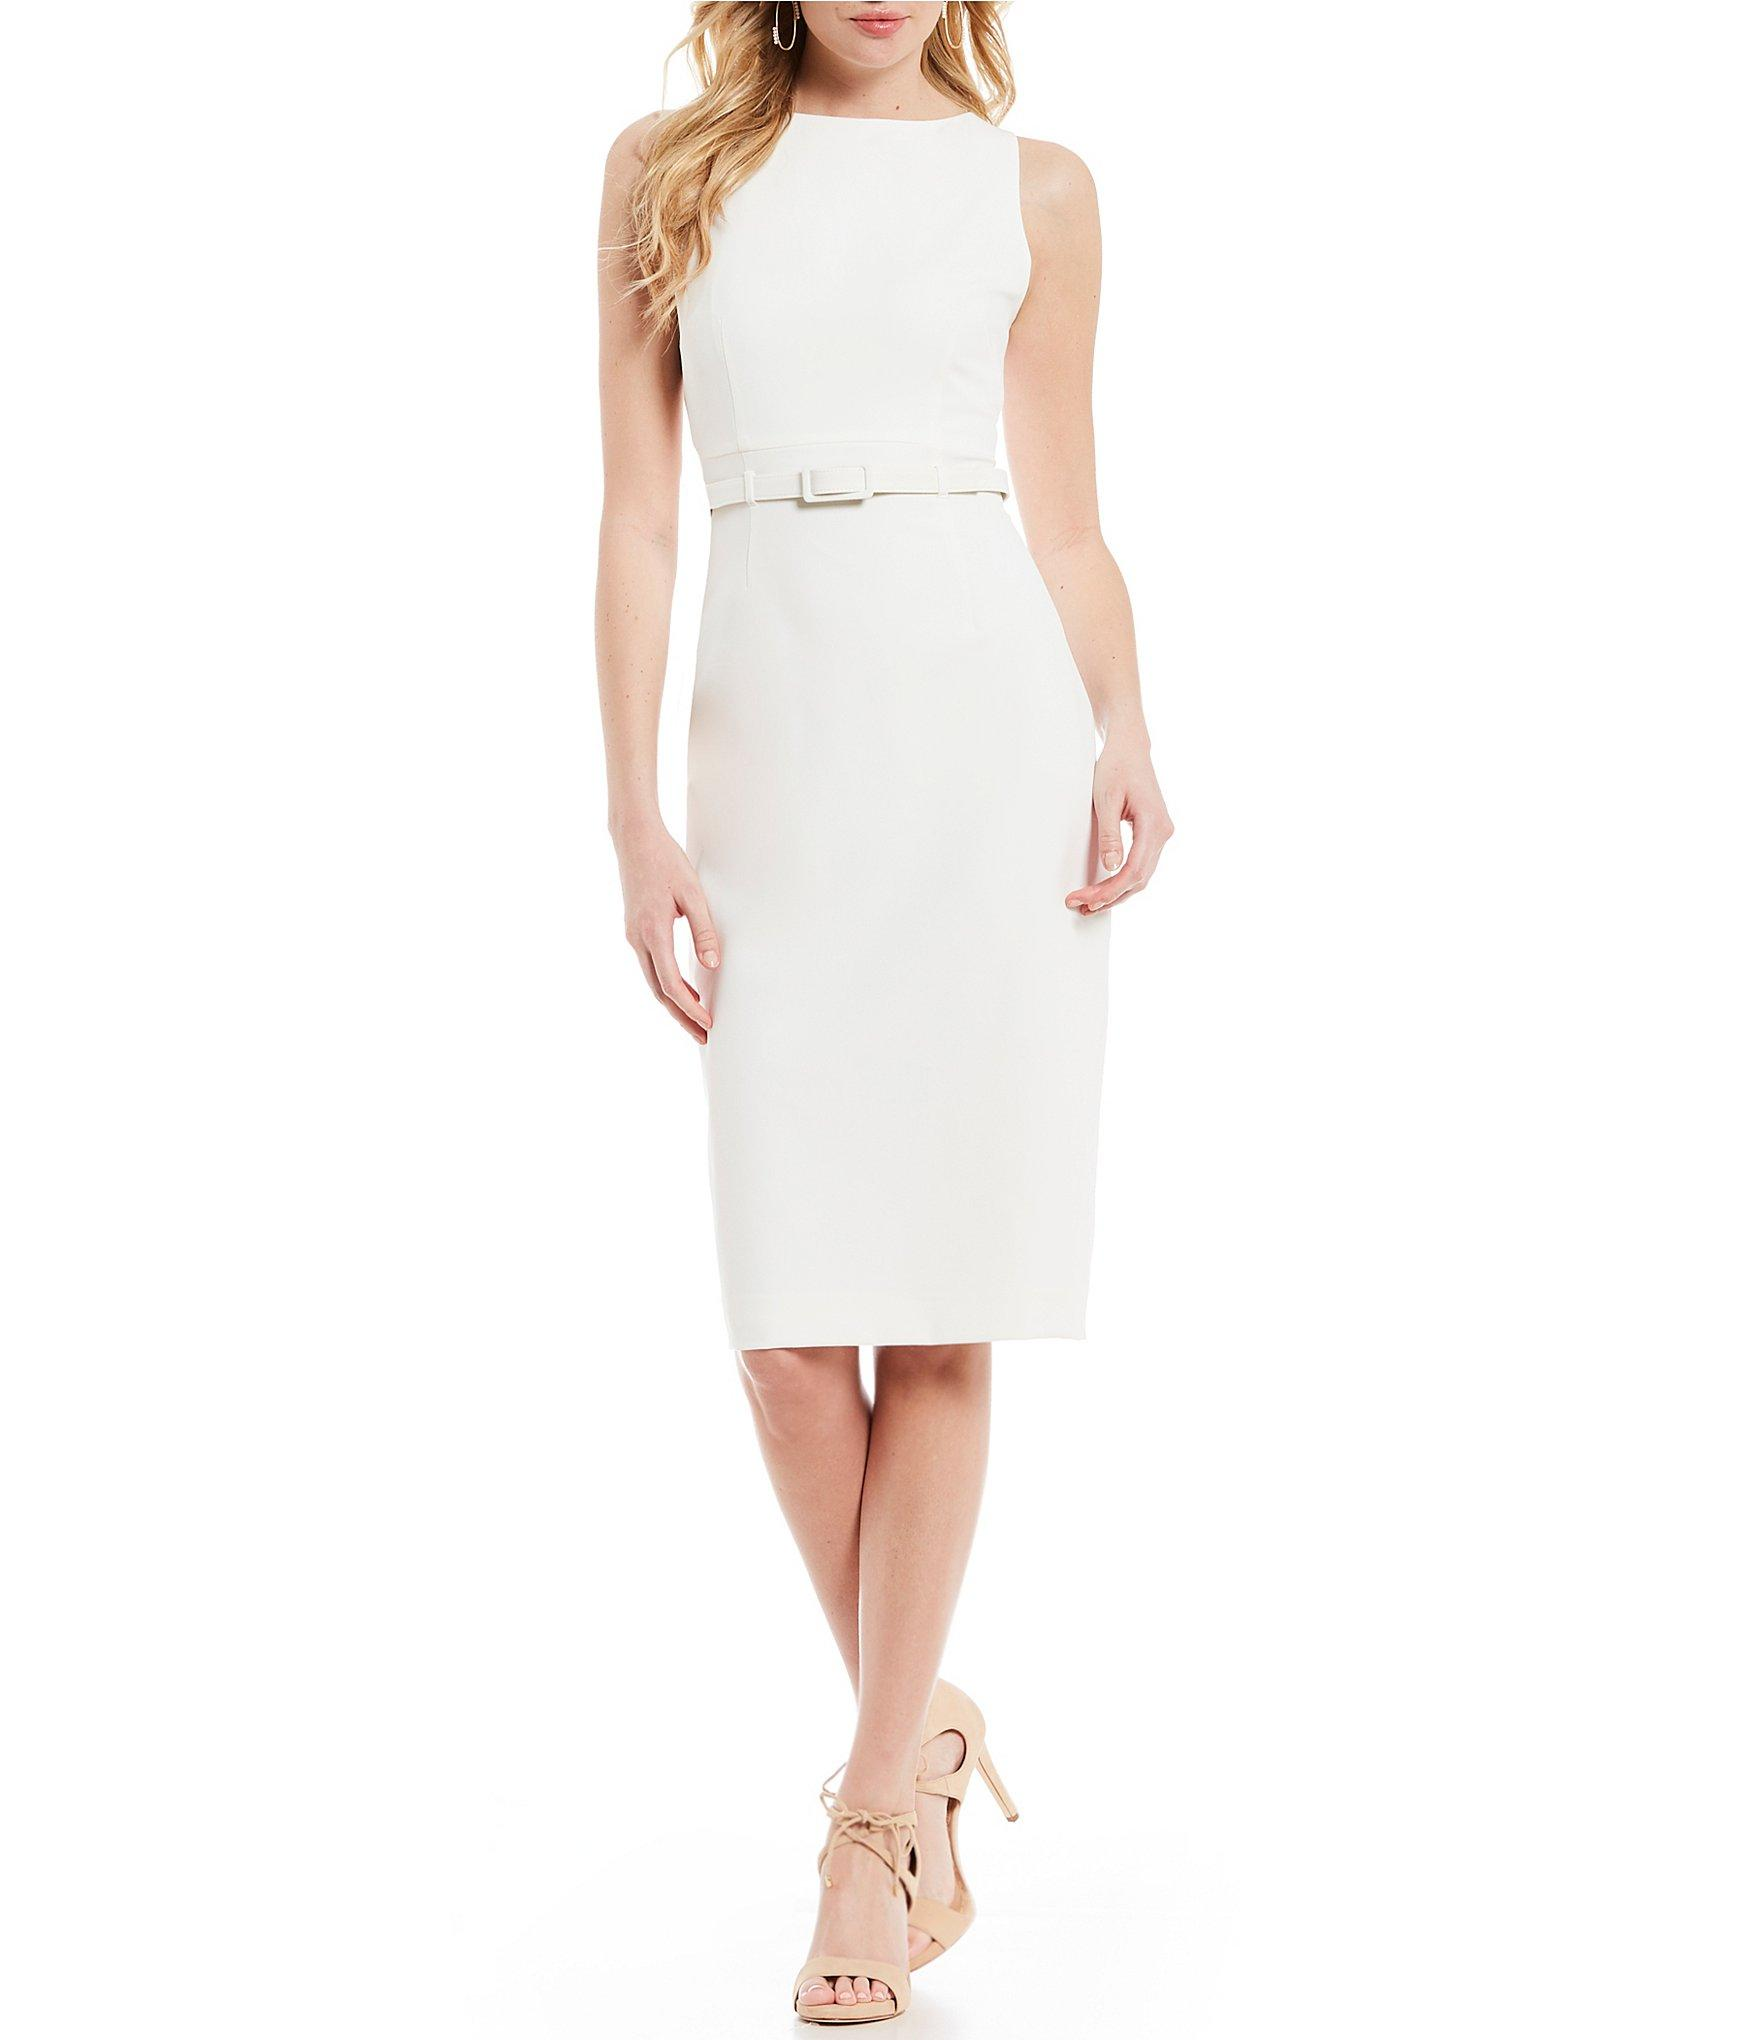 6809419b0a6 Lyst - Antonio Melani Keke Sleeveless Belted Waist Dress in White